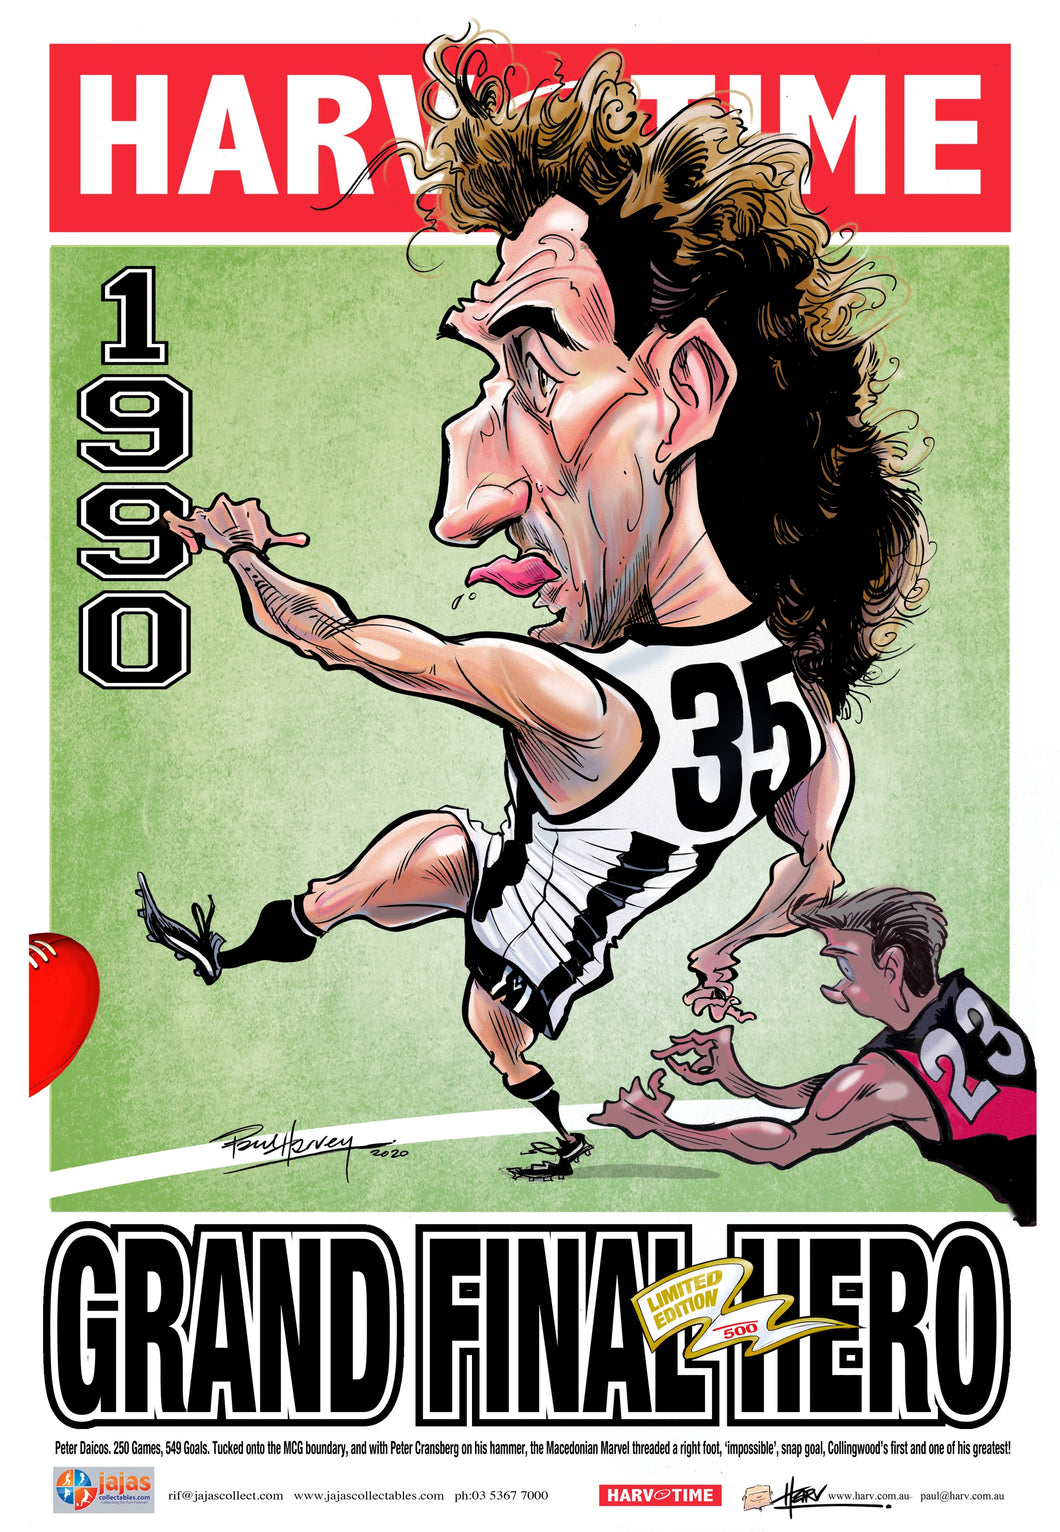 Peter Daicos, Grand Final Hero Harv Time Poster